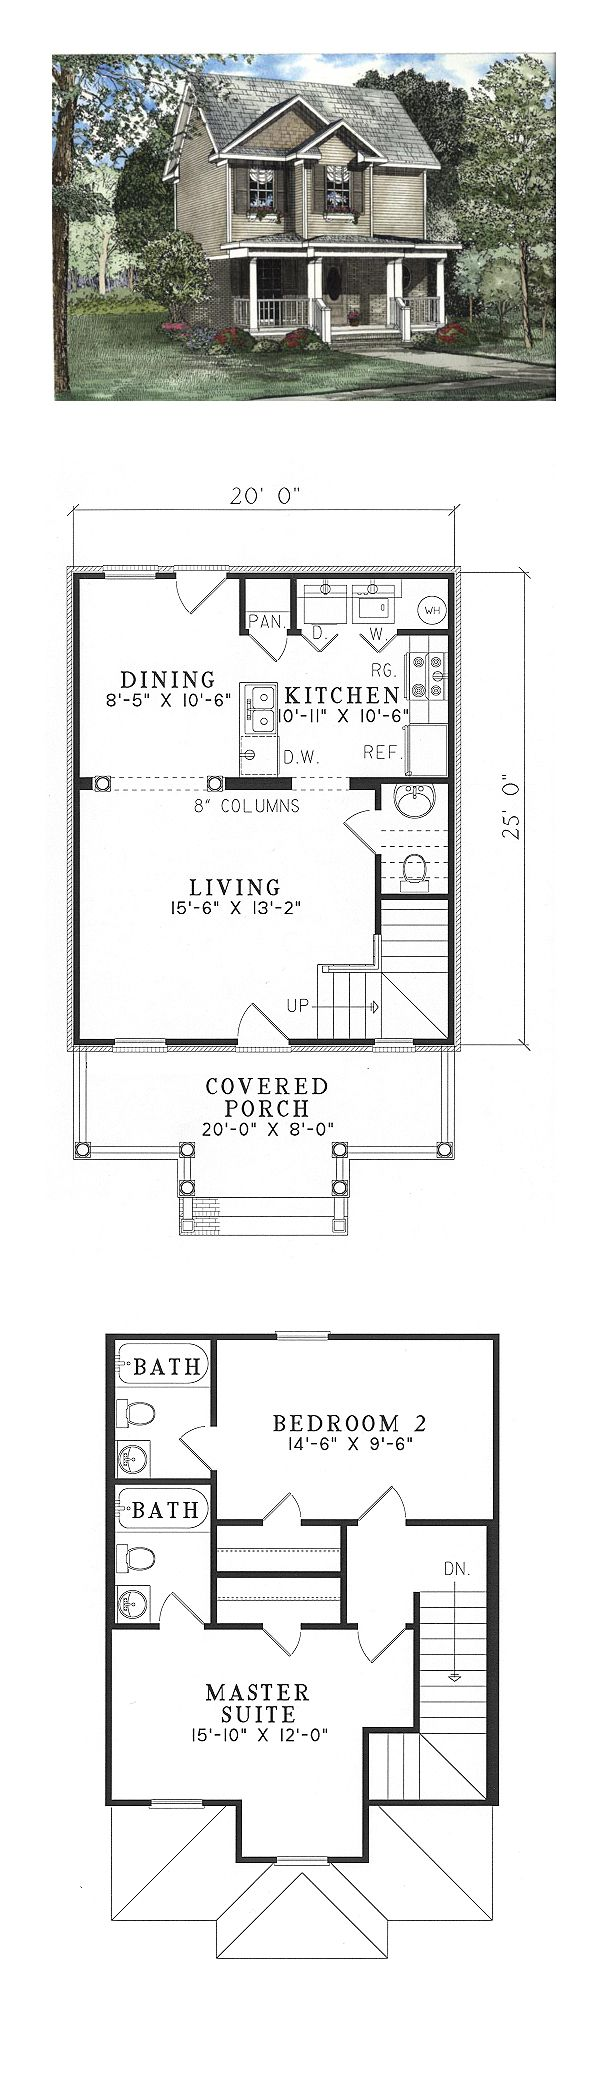 Narrow lot house plan 62323 total living area 980 sq ft 2 bedrooms and 2 5 bathrooms - Narrow house plan paint ...